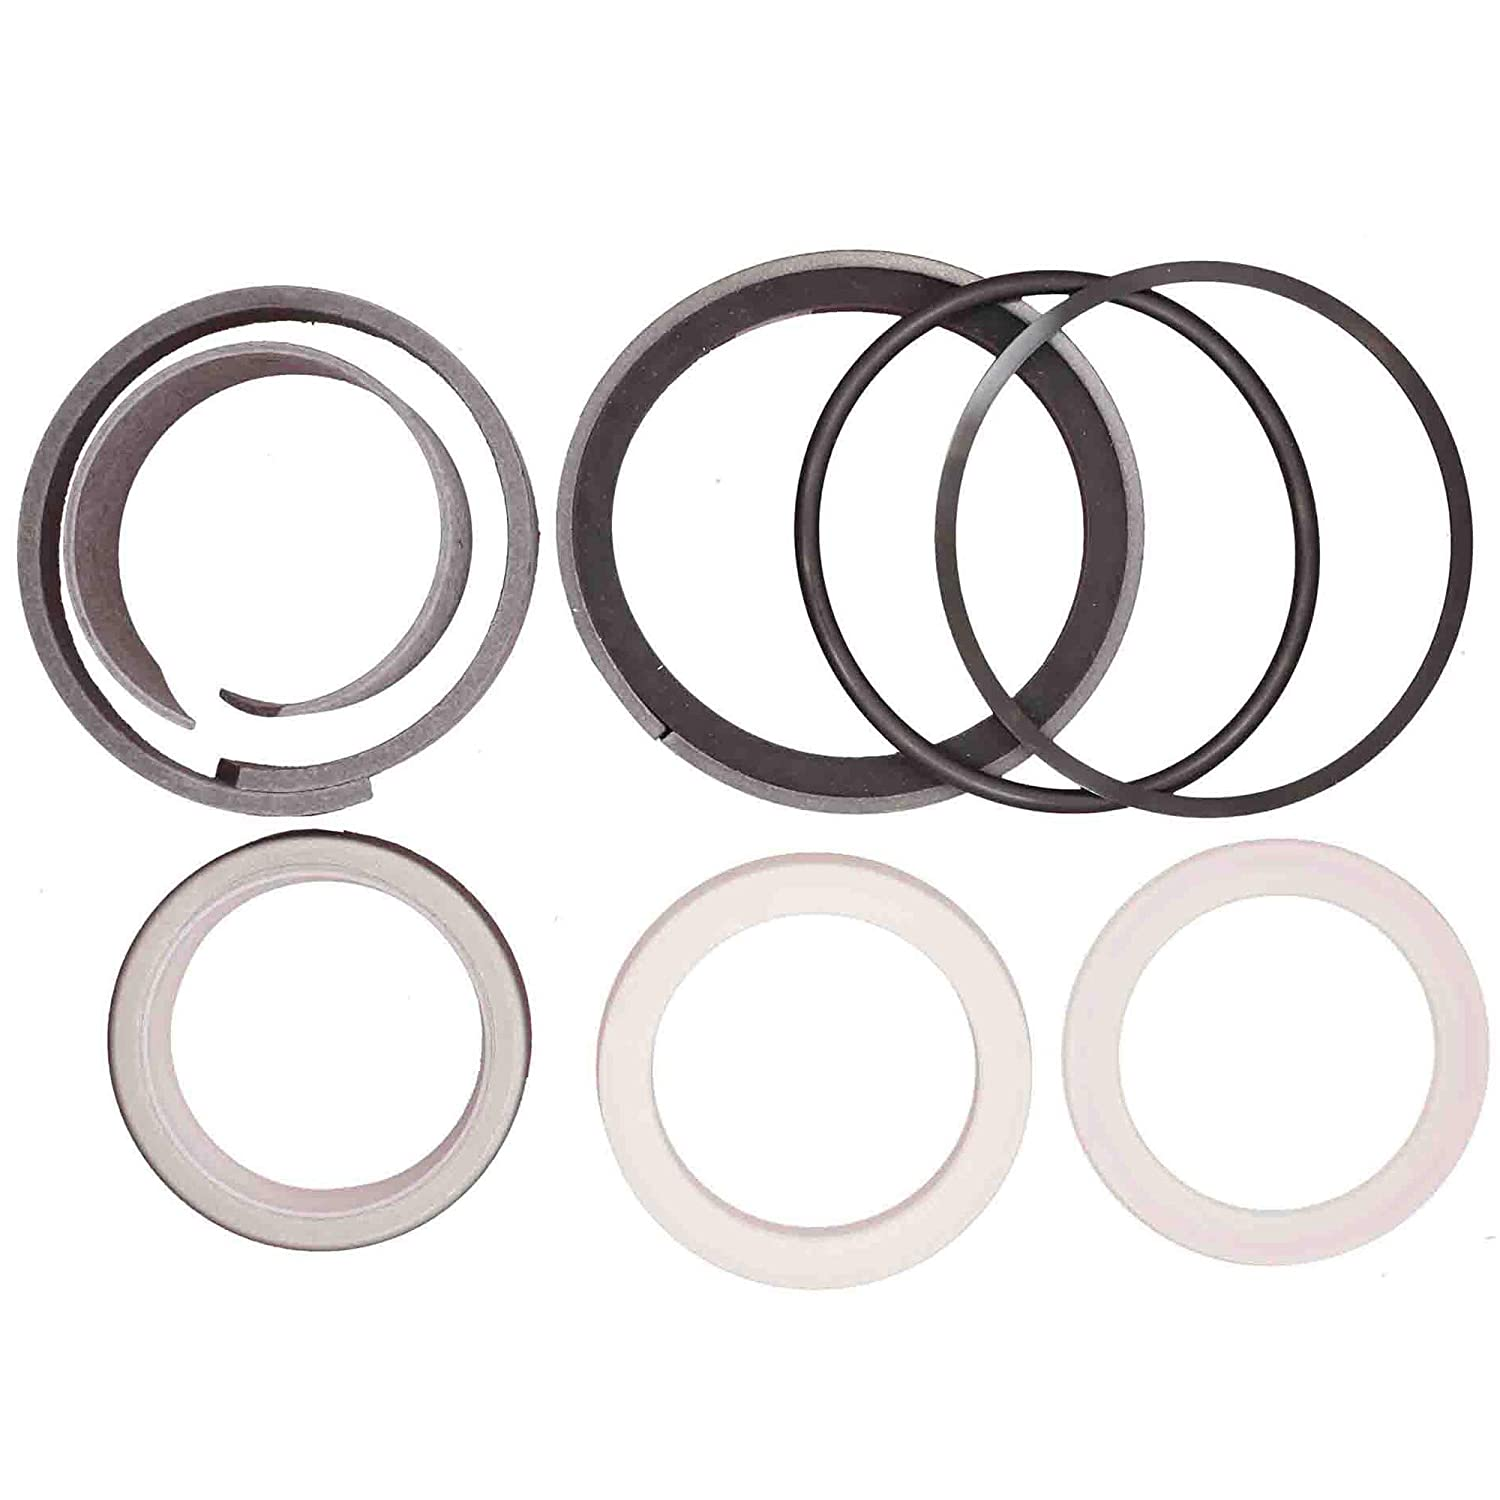 Whole Machine Hydraulic Cylinder Seal Kit Made for Case 480F 480FLL Backhoe